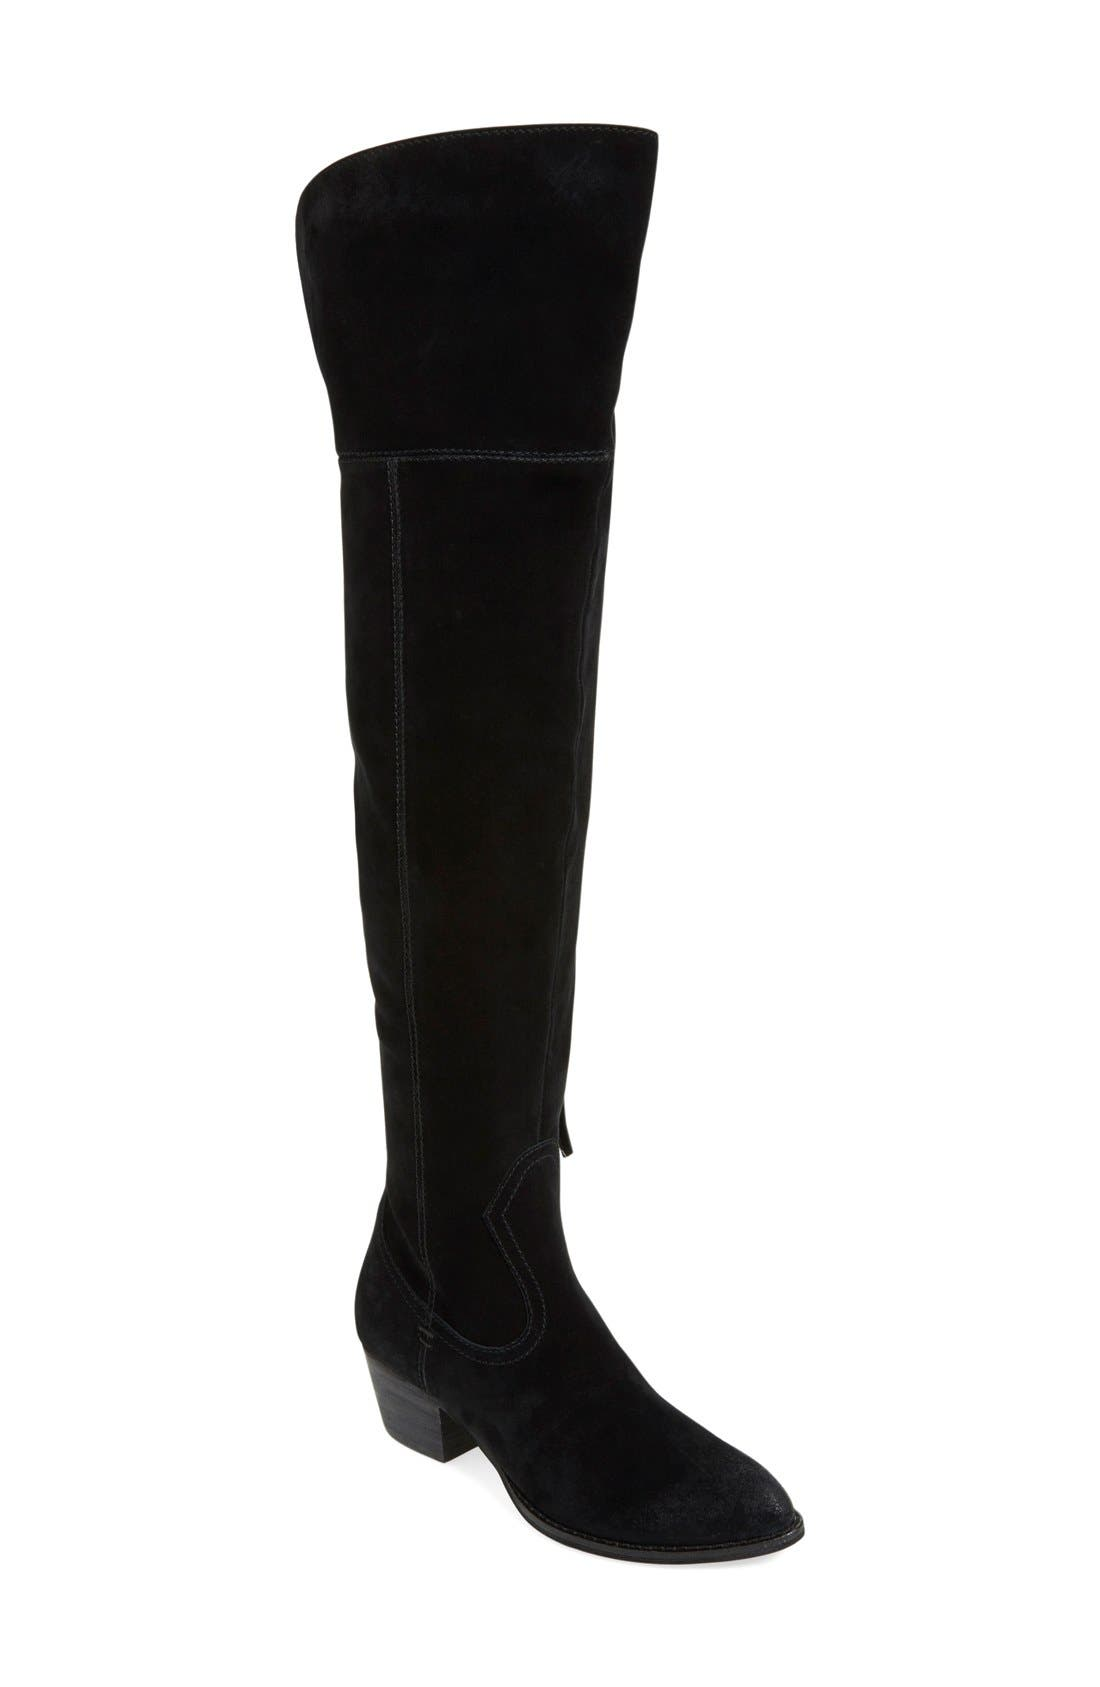 DOLCE VITA, 'Silas' Over the Knee Boot, Main thumbnail 1, color, 001